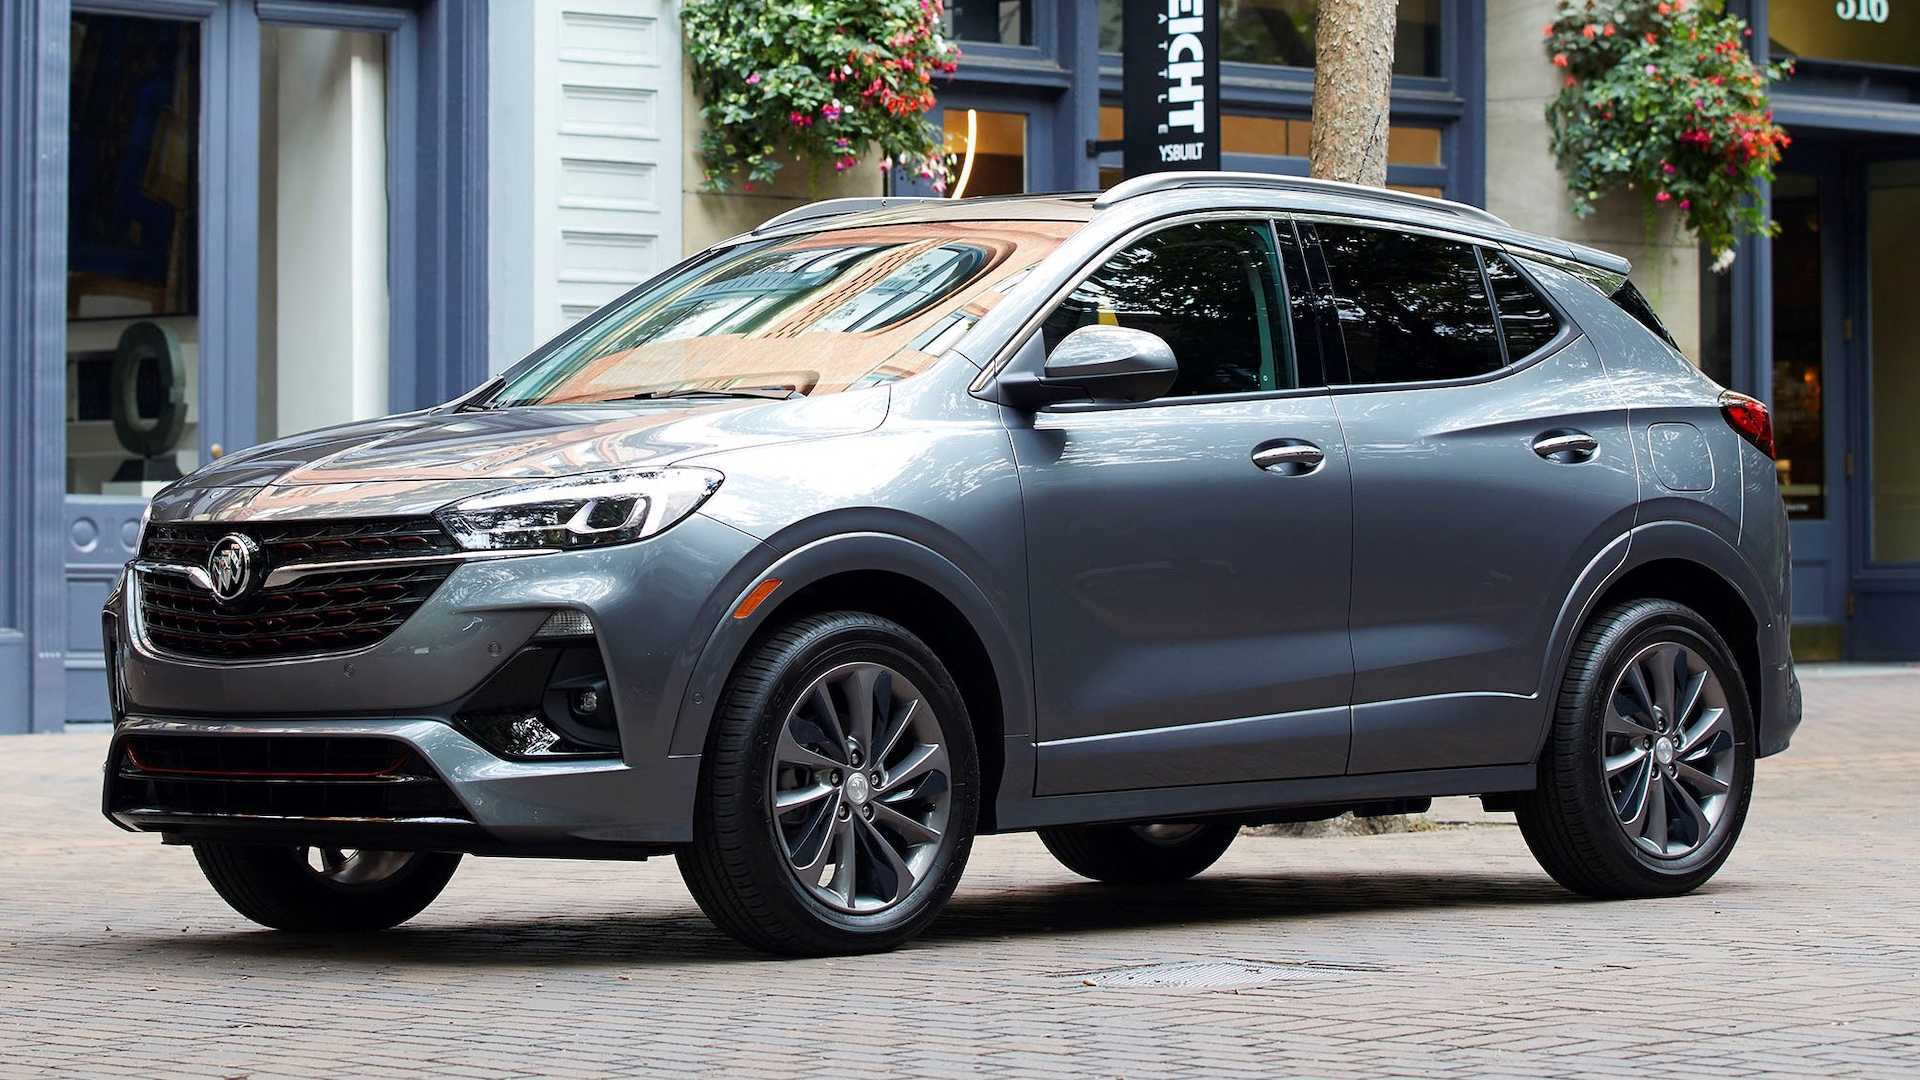 2021 Buick Encore Gx Details Emerge: Styling Tweaks, More Tech 2022 Buick Encore Options, Oil Type, Pictures